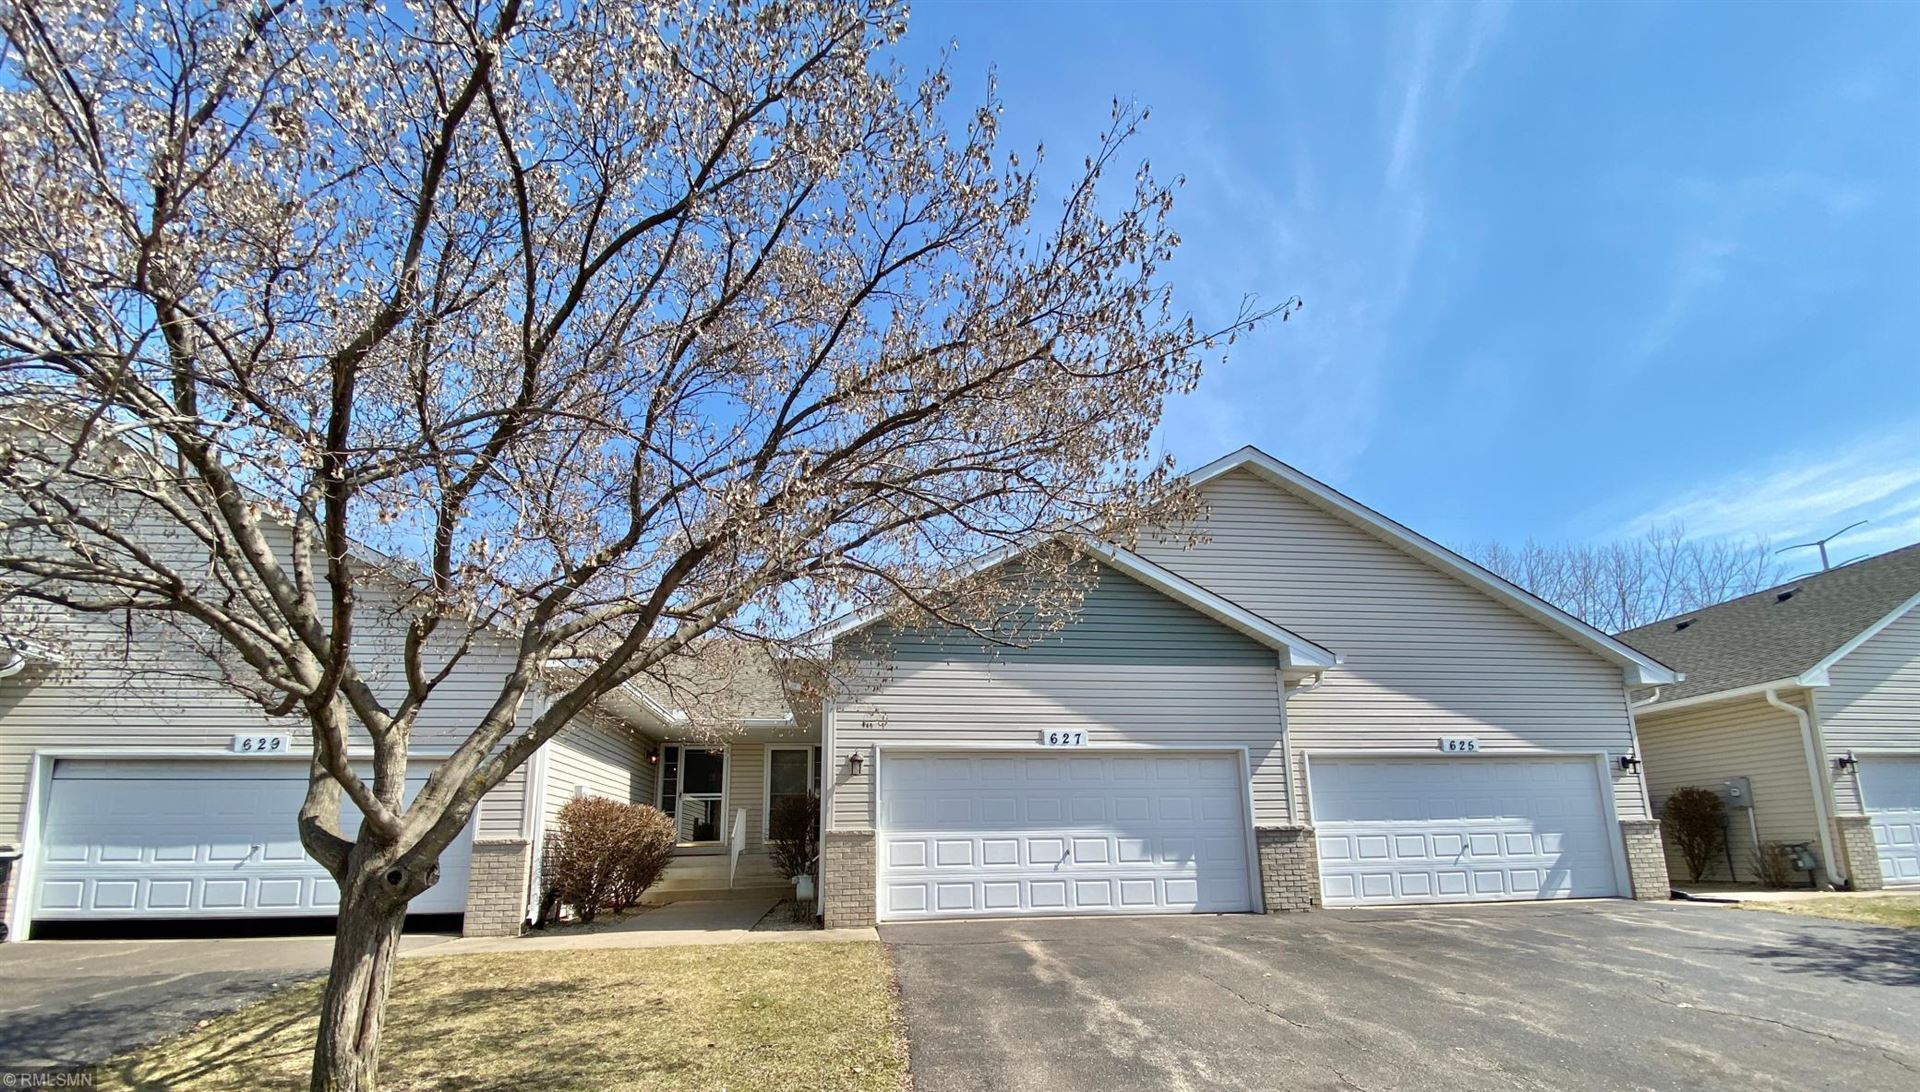 627 86th Lane NW, Coon Rapids, MN 55433 - #: 5615504